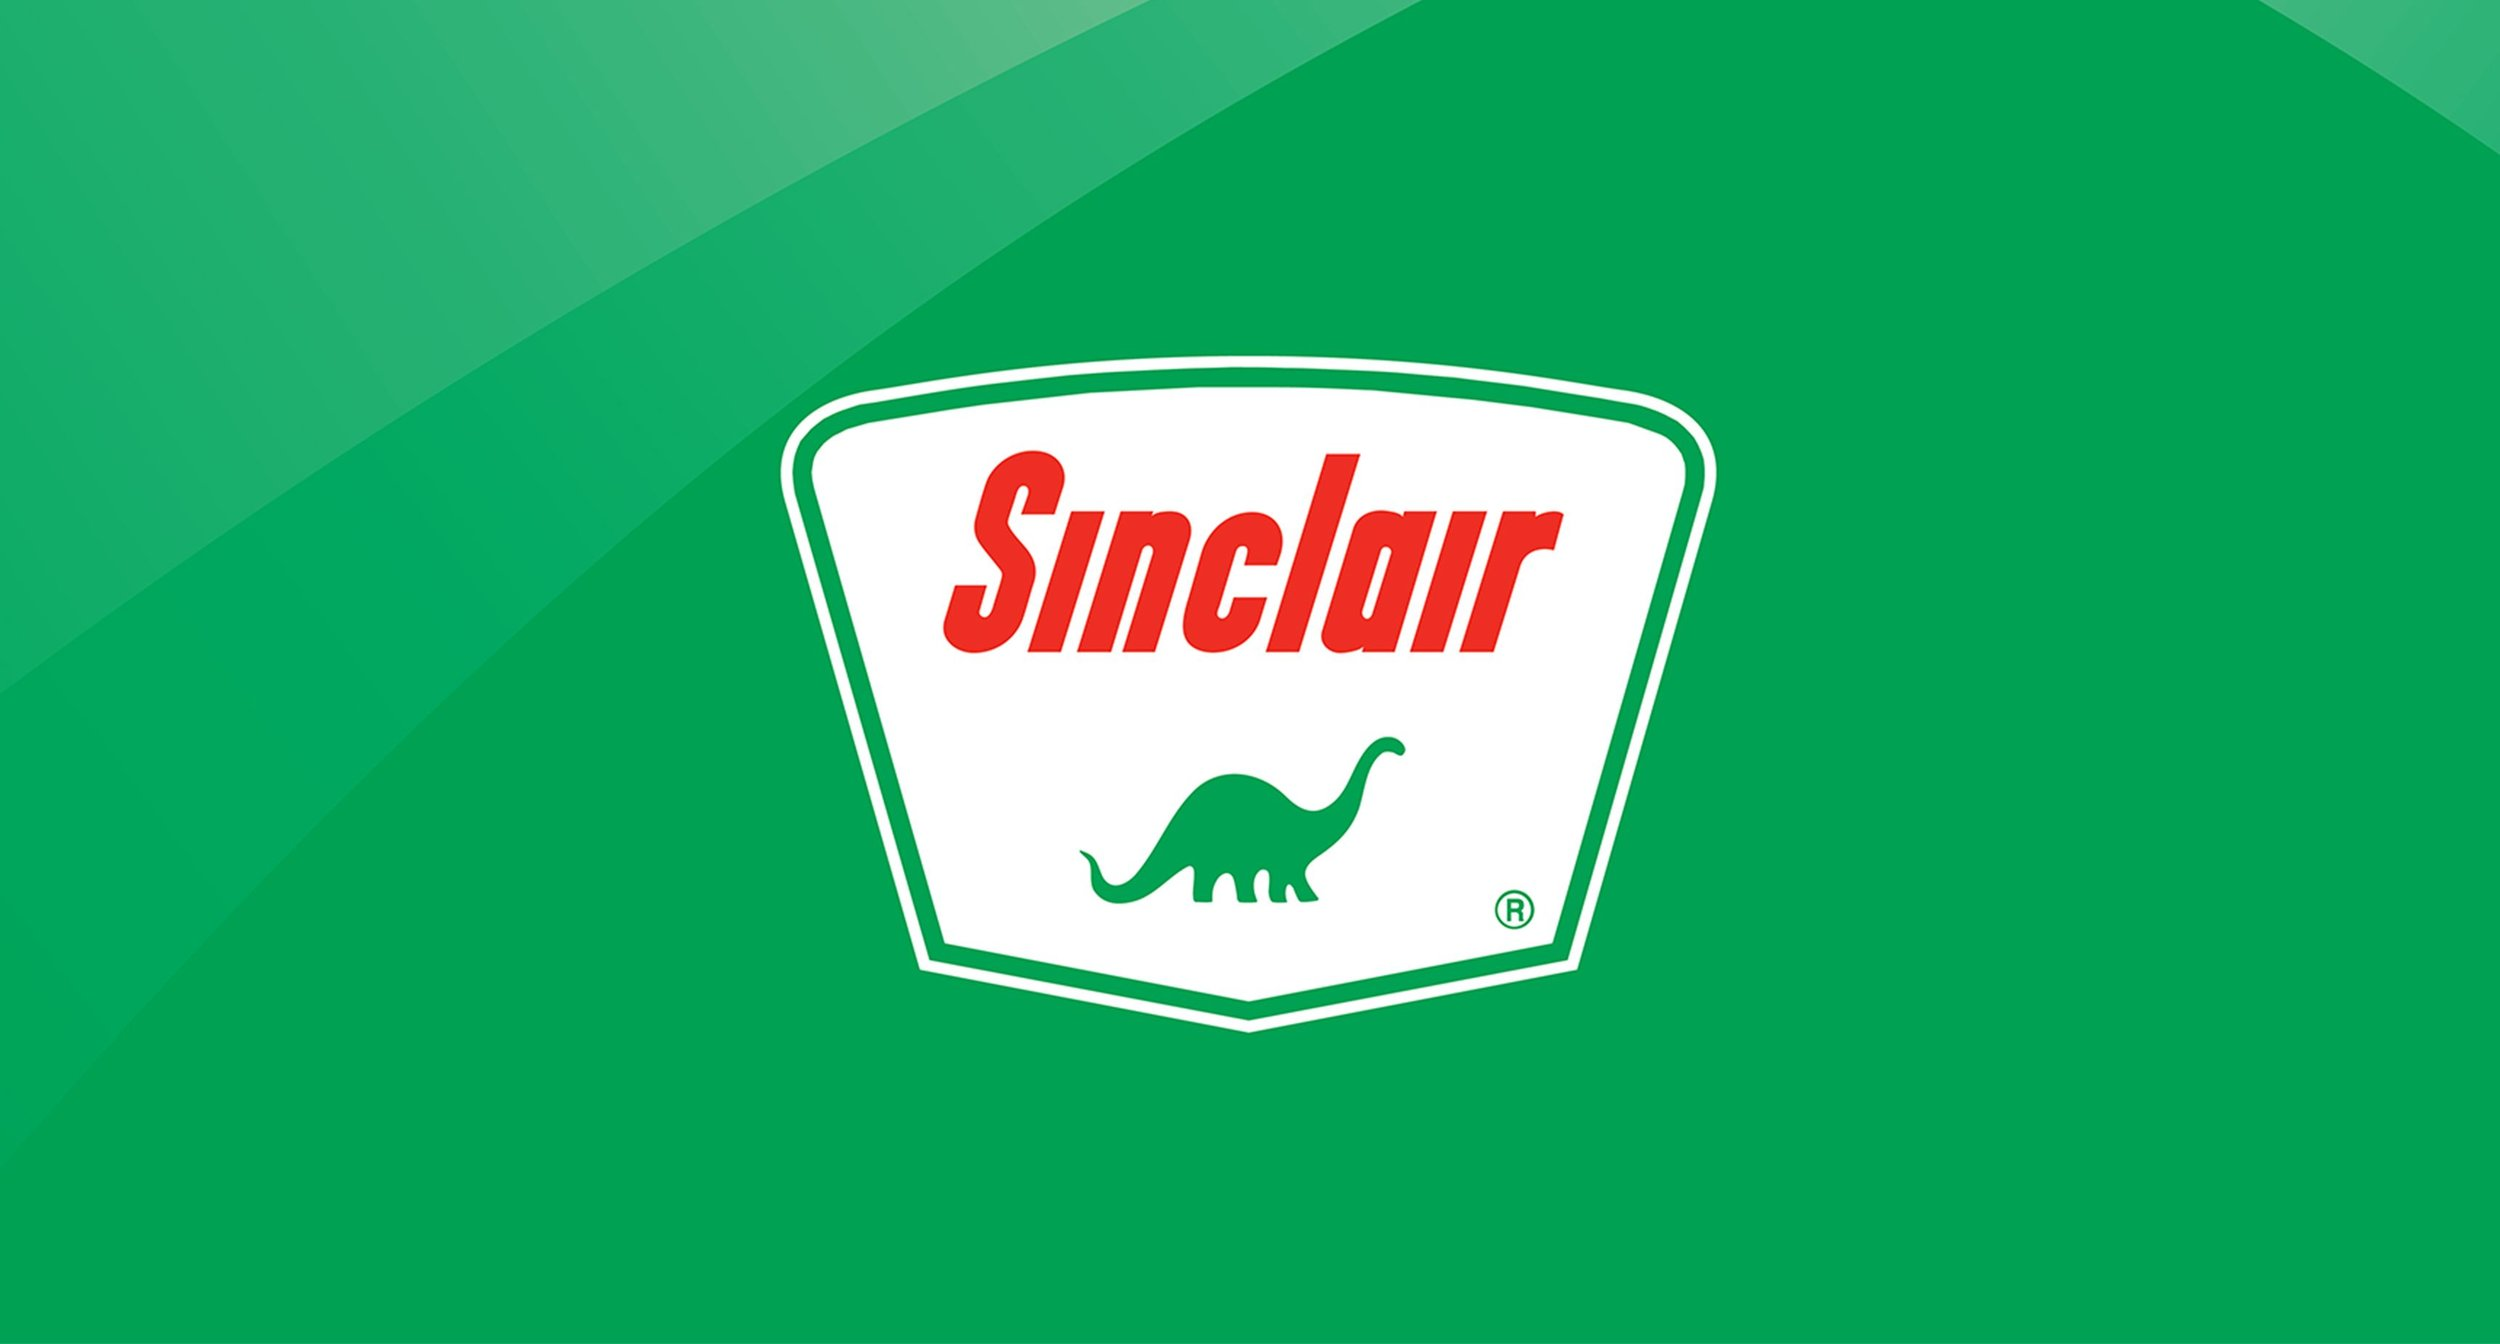 Sinclair Logo on Green Background